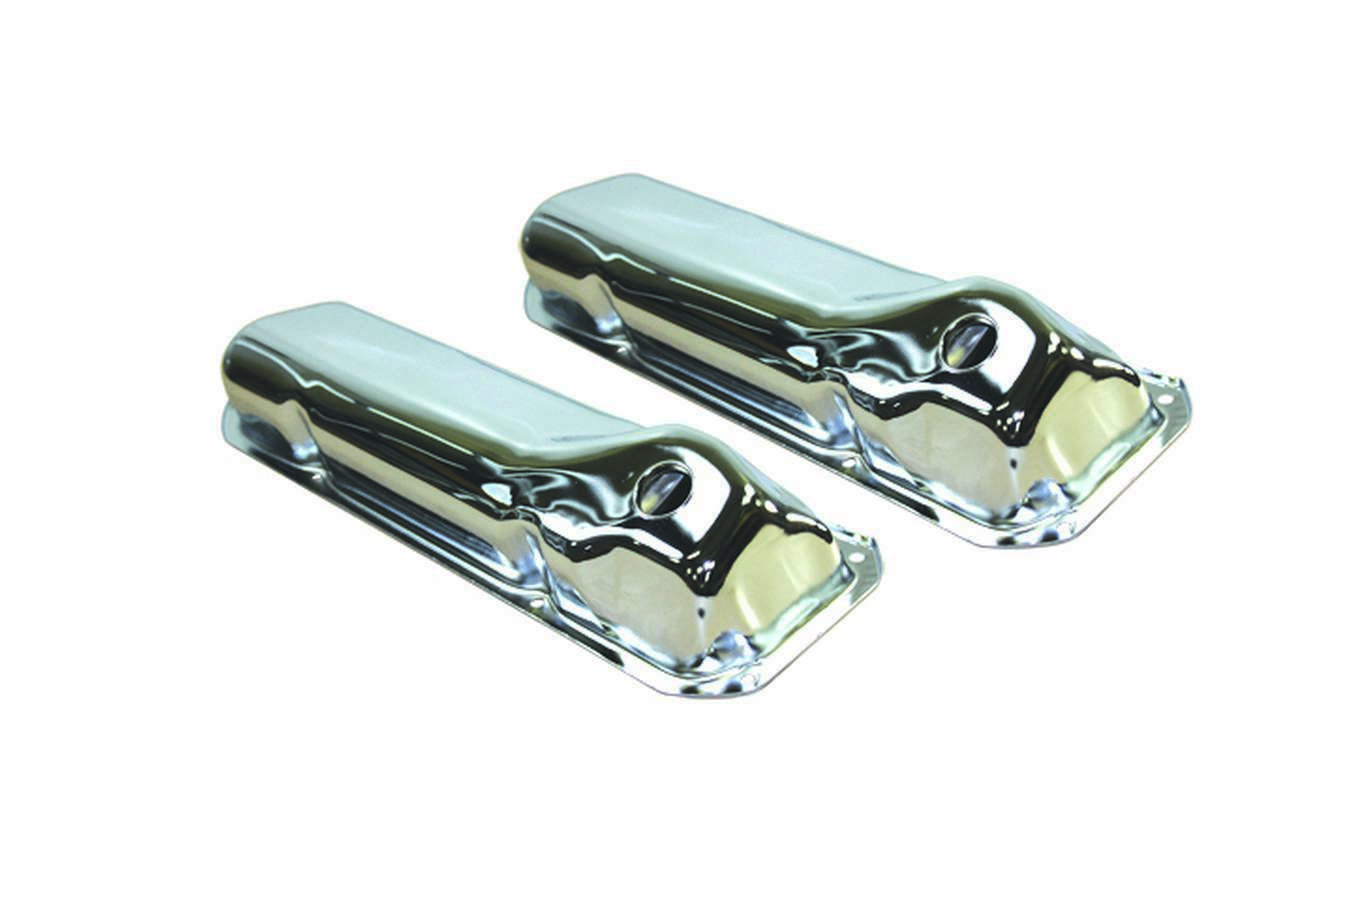 Specialty Products 8332 Valve Cover, Stock Height, Baffled, Breather Holes, Steel, Chrome, Ford Cleveland / Modified, Pair